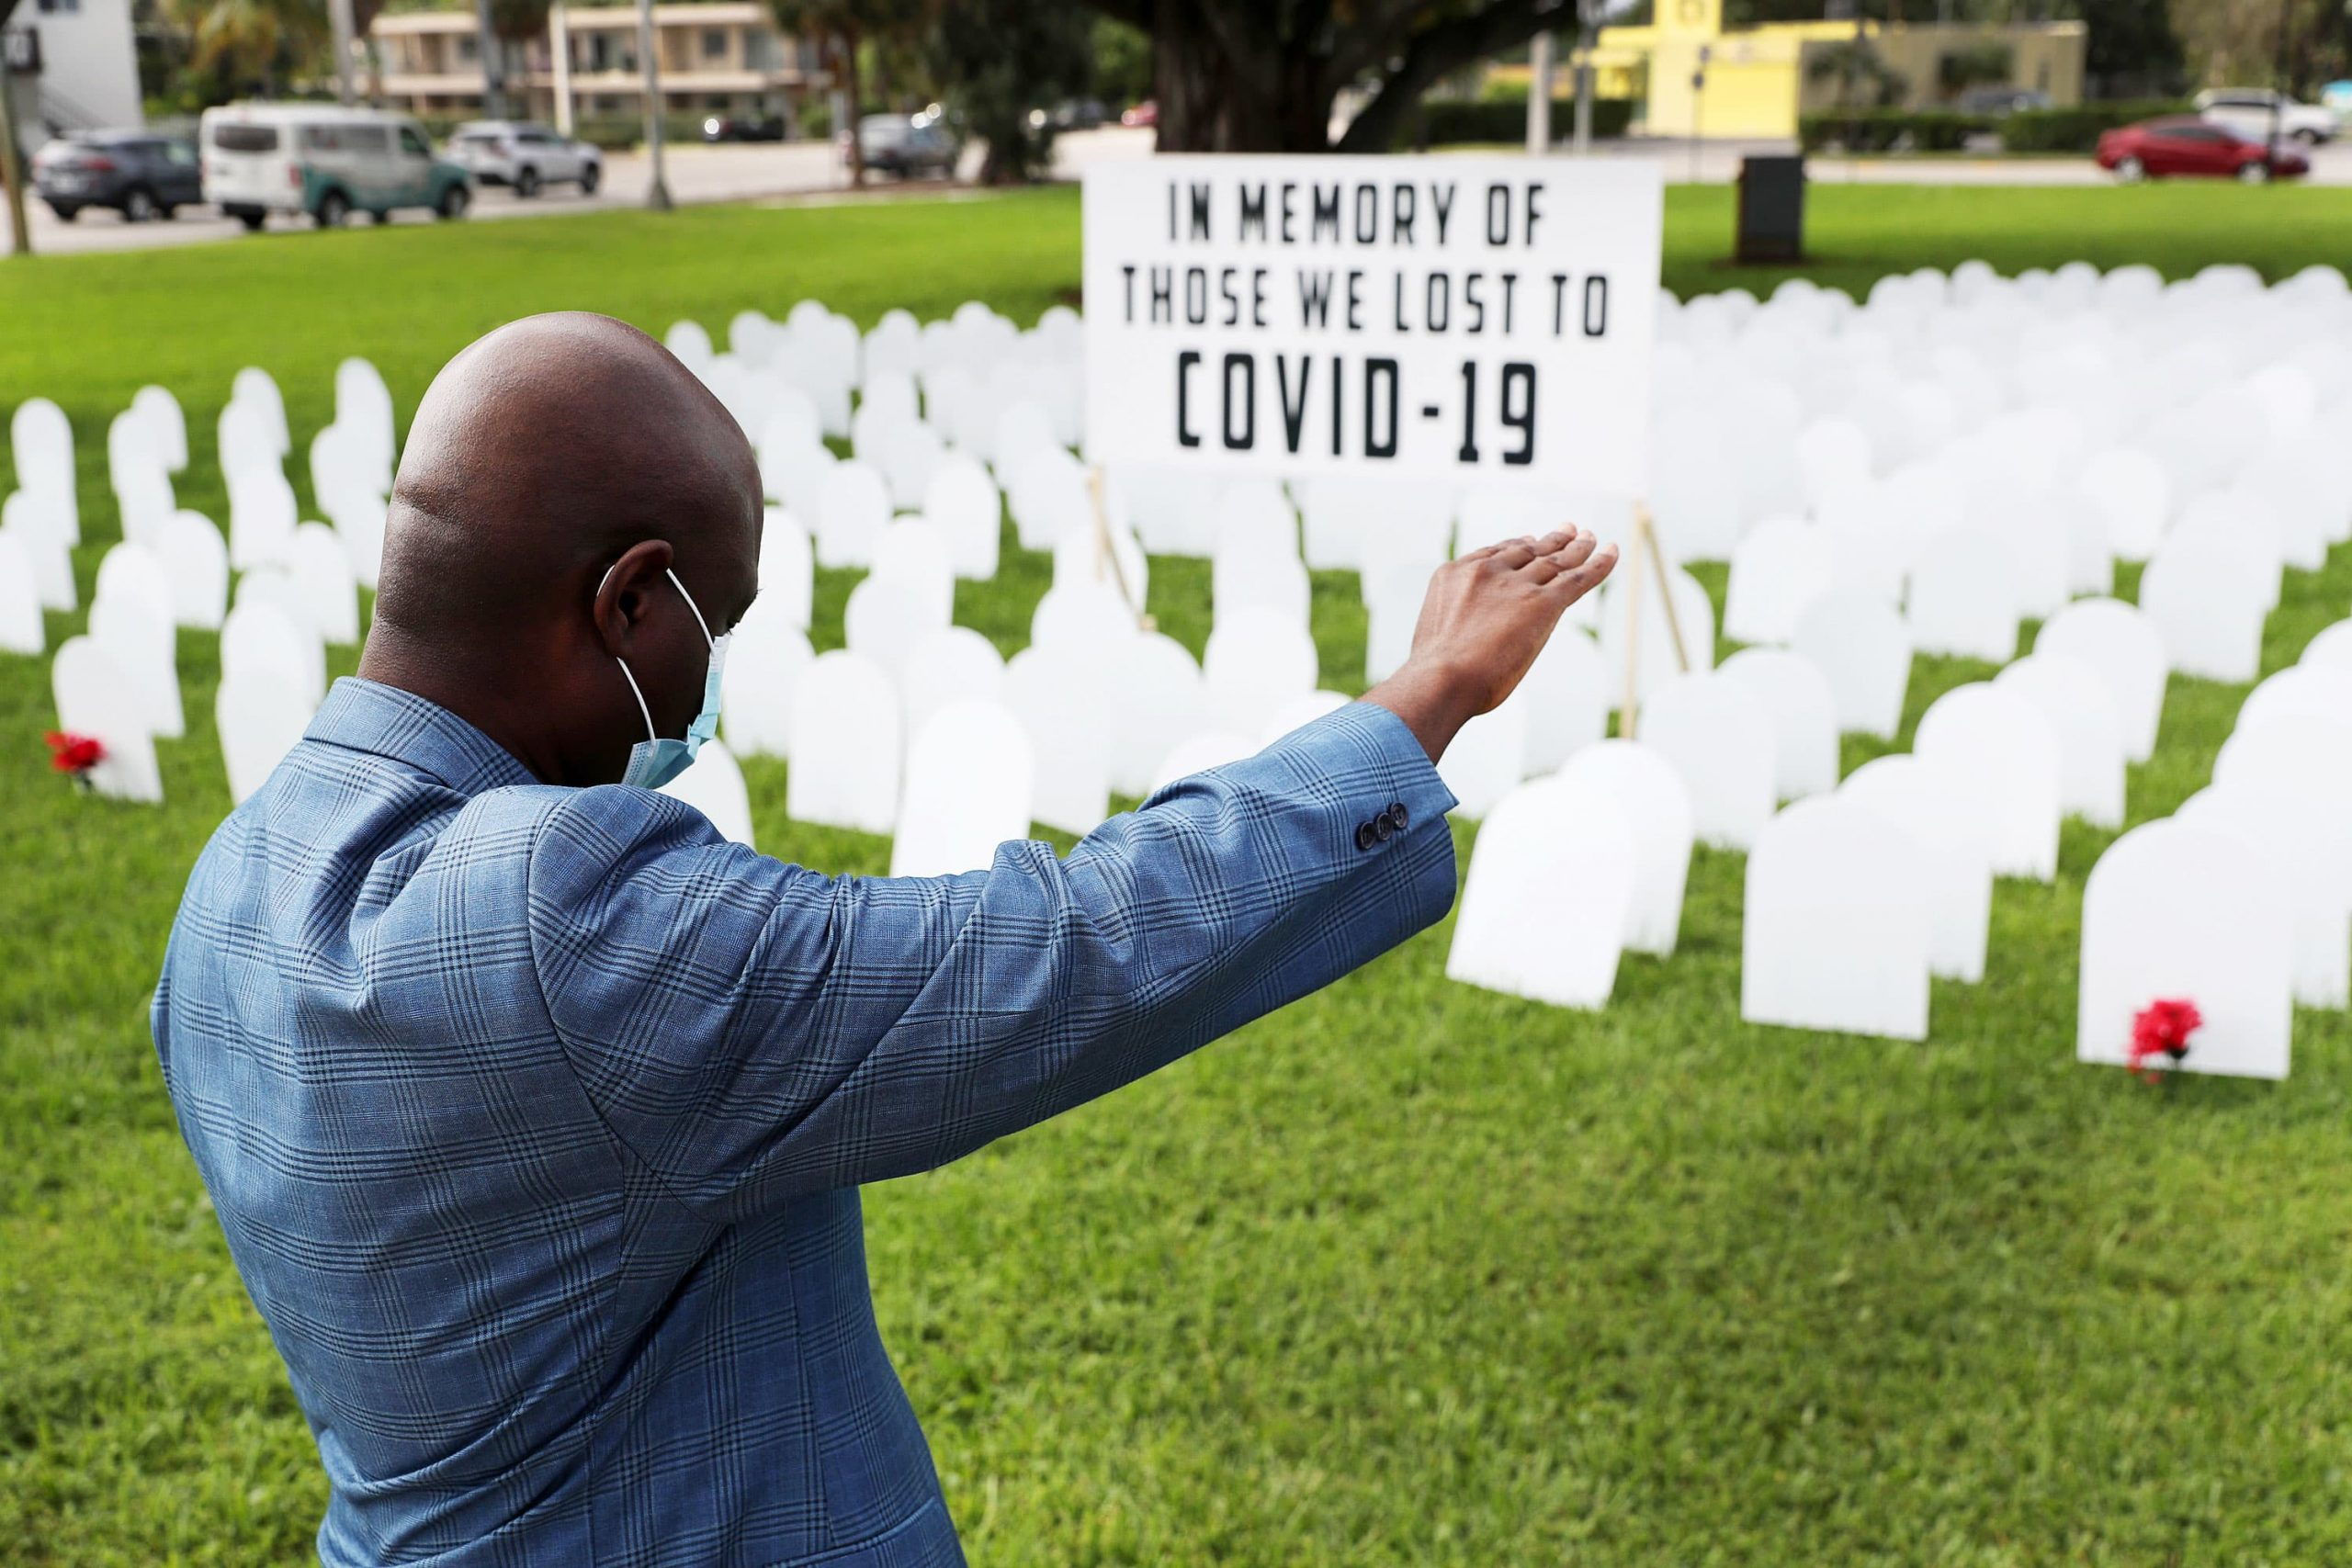 U.S. stories greater than 4,000 Covid deaths for first time as outbreak worsens